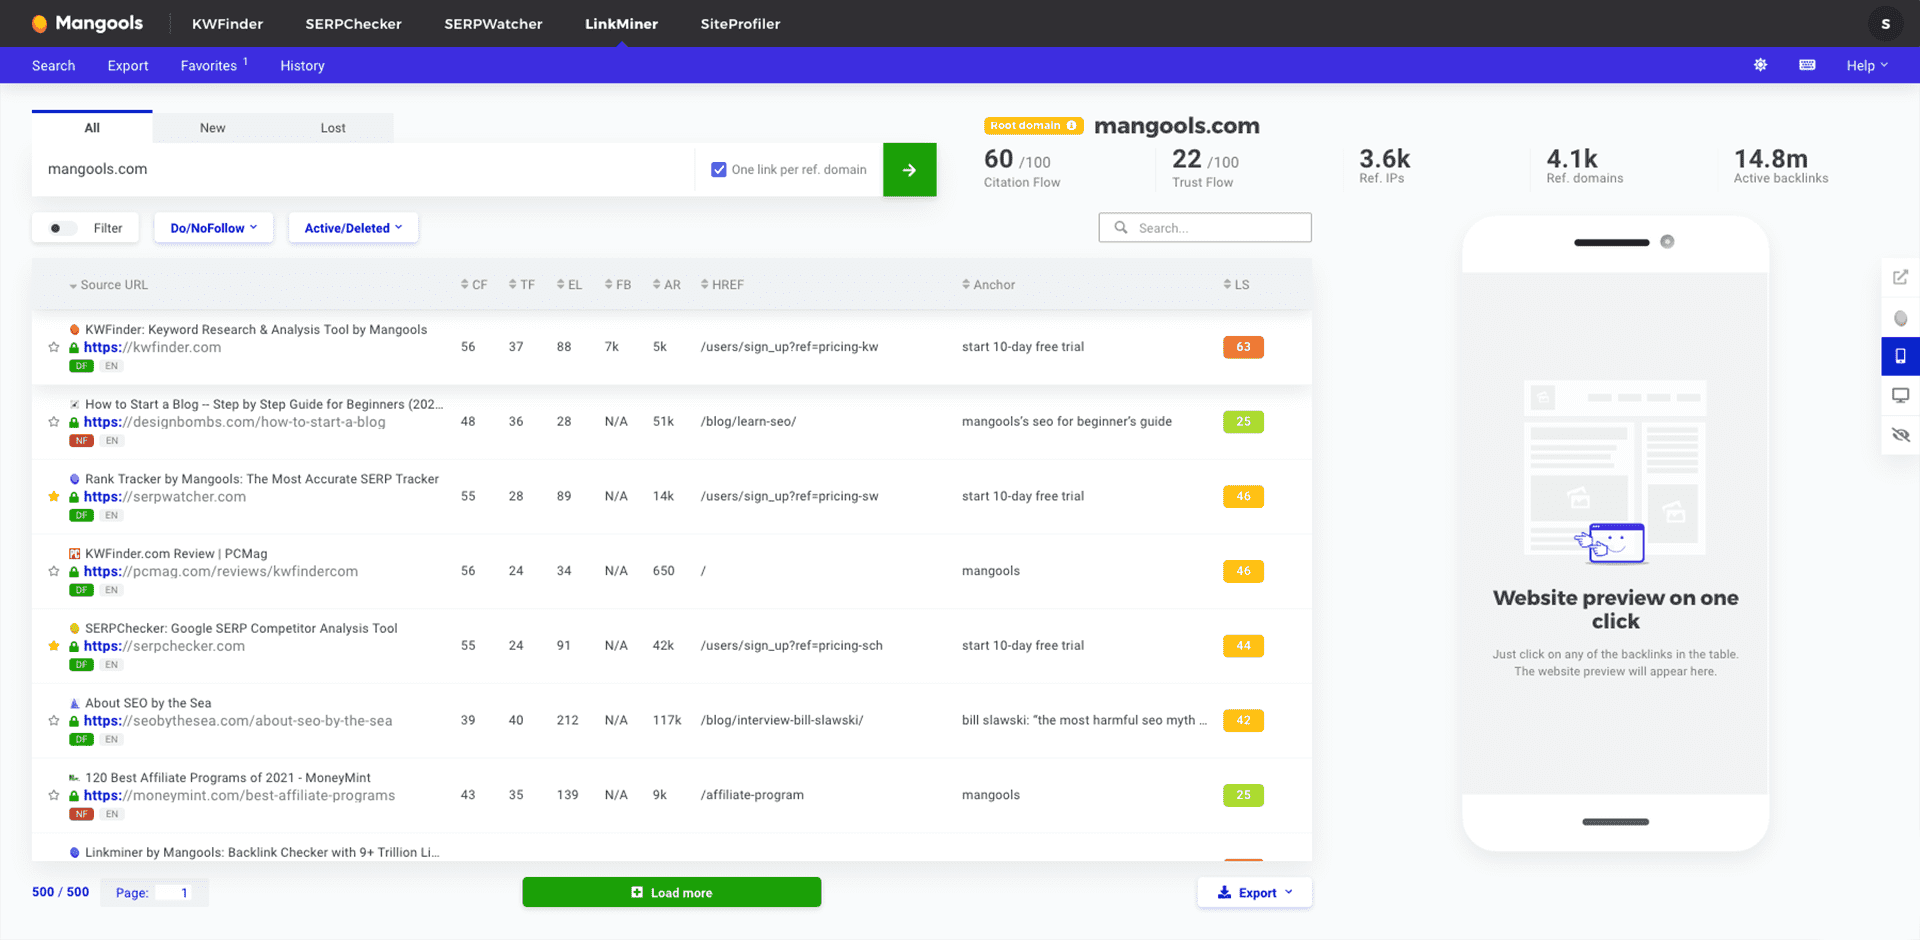 Screenshot of LinkMiner app